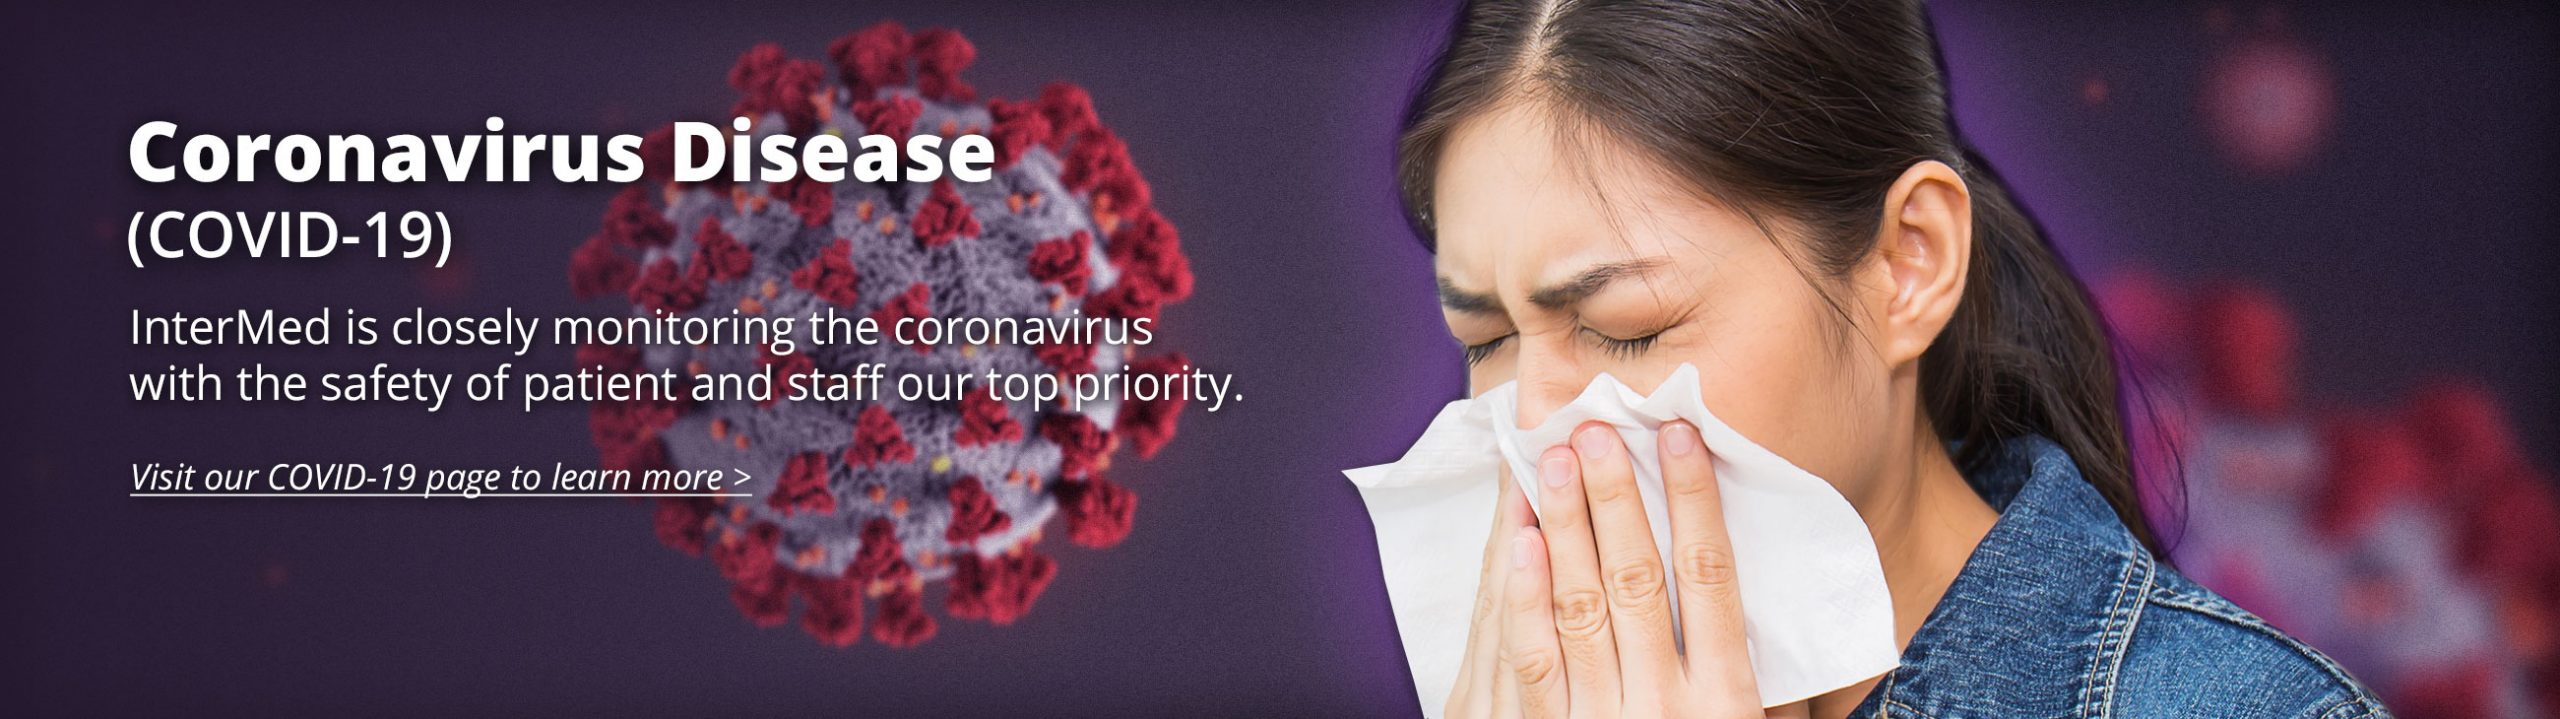 A photo of a woman sneezing into a tissue with Coronavirus, COVID-19